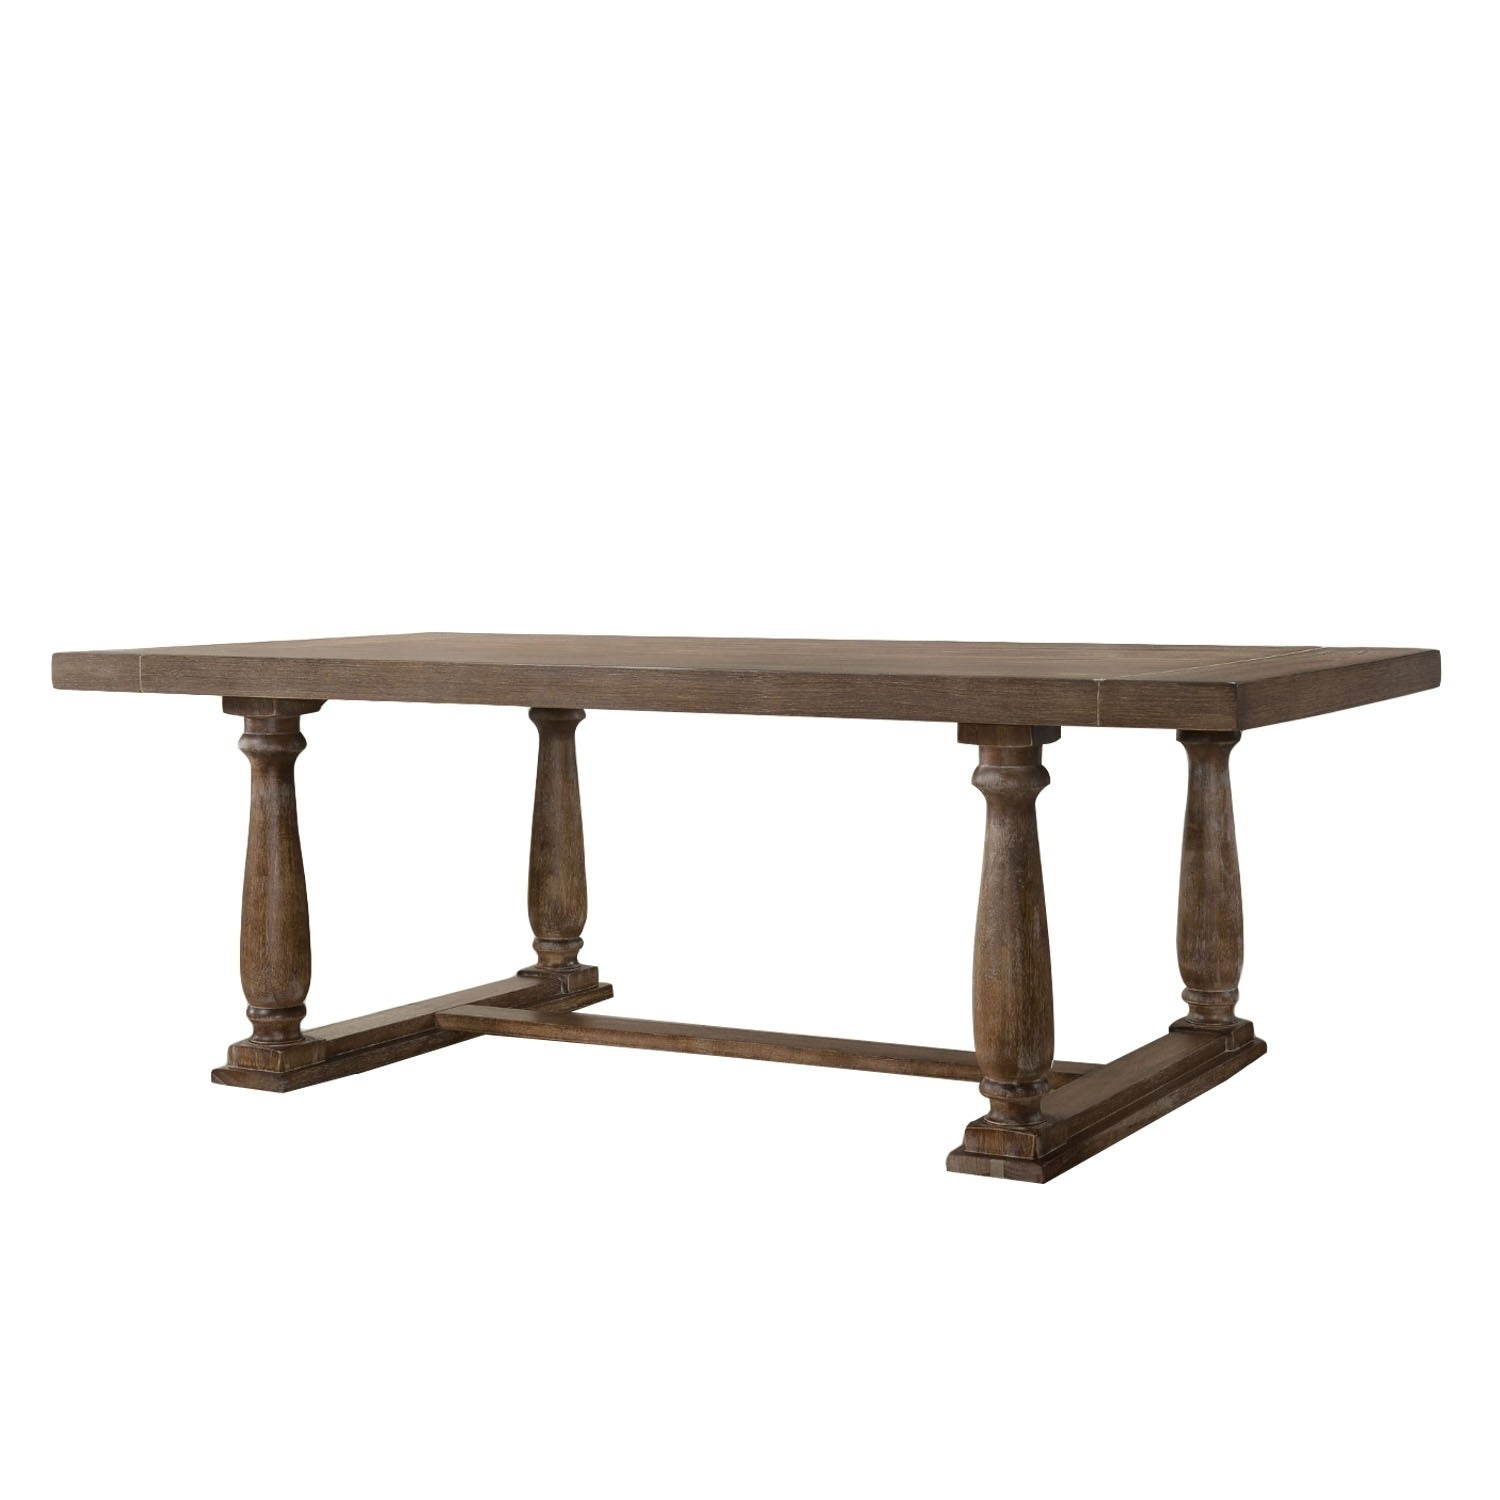 Shop Traditional Style Wooden Dining Table With Rectangular Shape